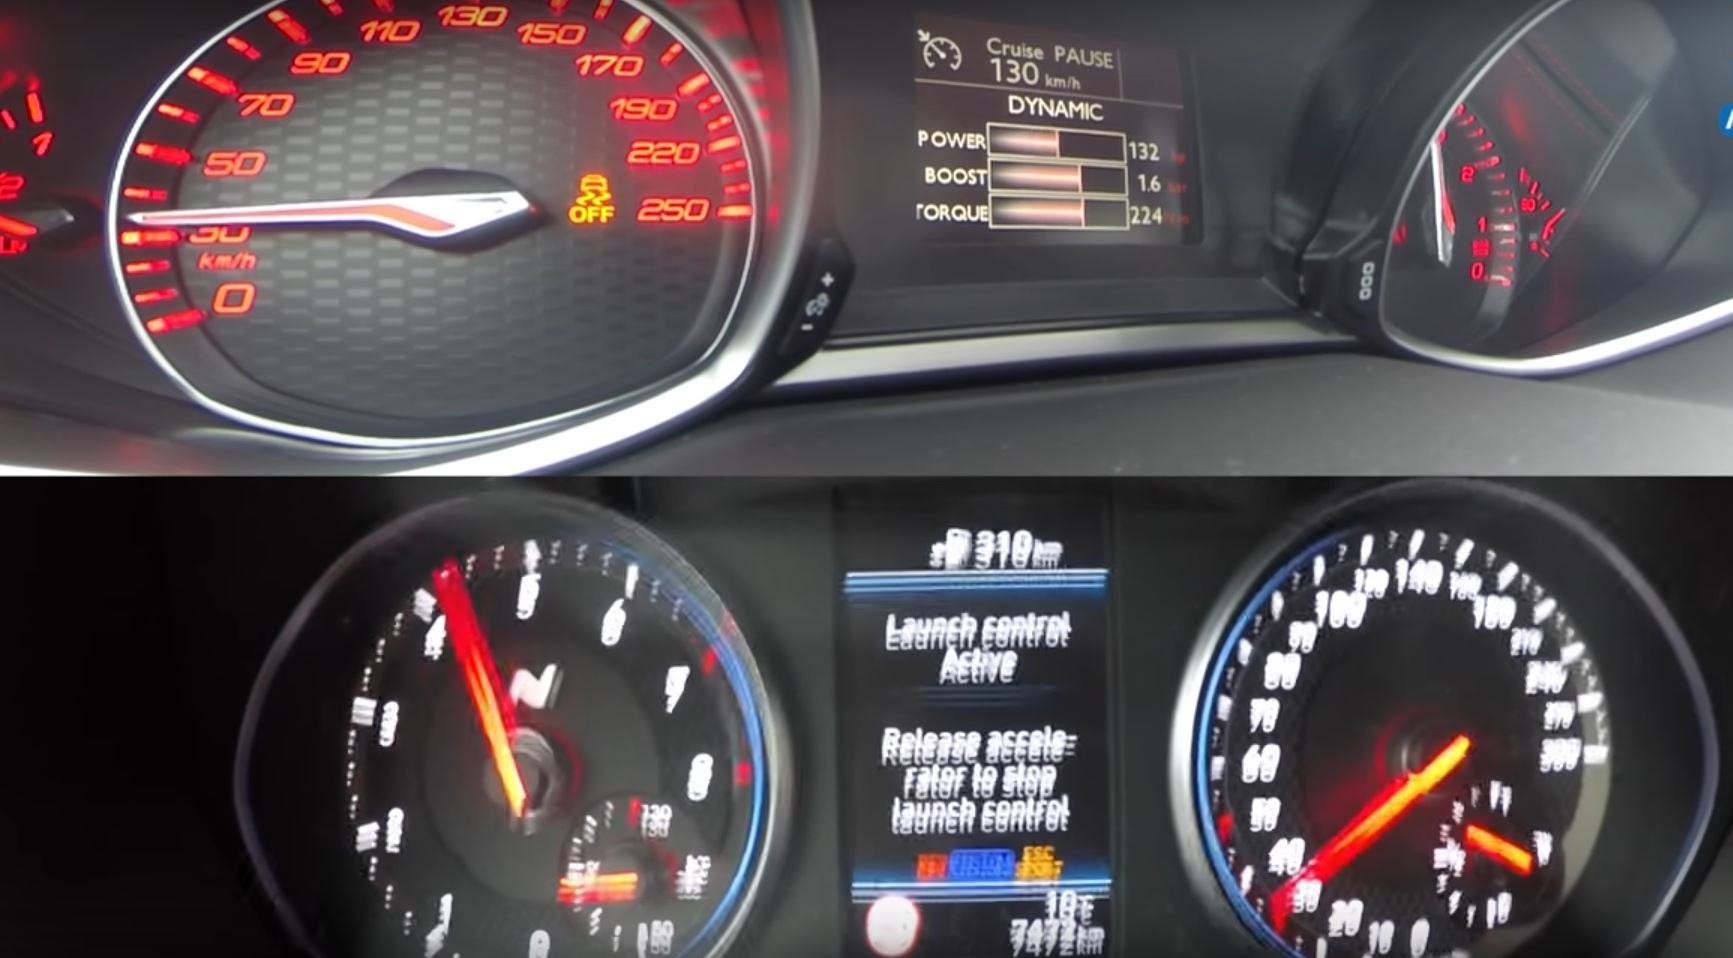 Hyundai i30 N and Peugeot 308 GTi Look Even in Top Speed Autobahn ...